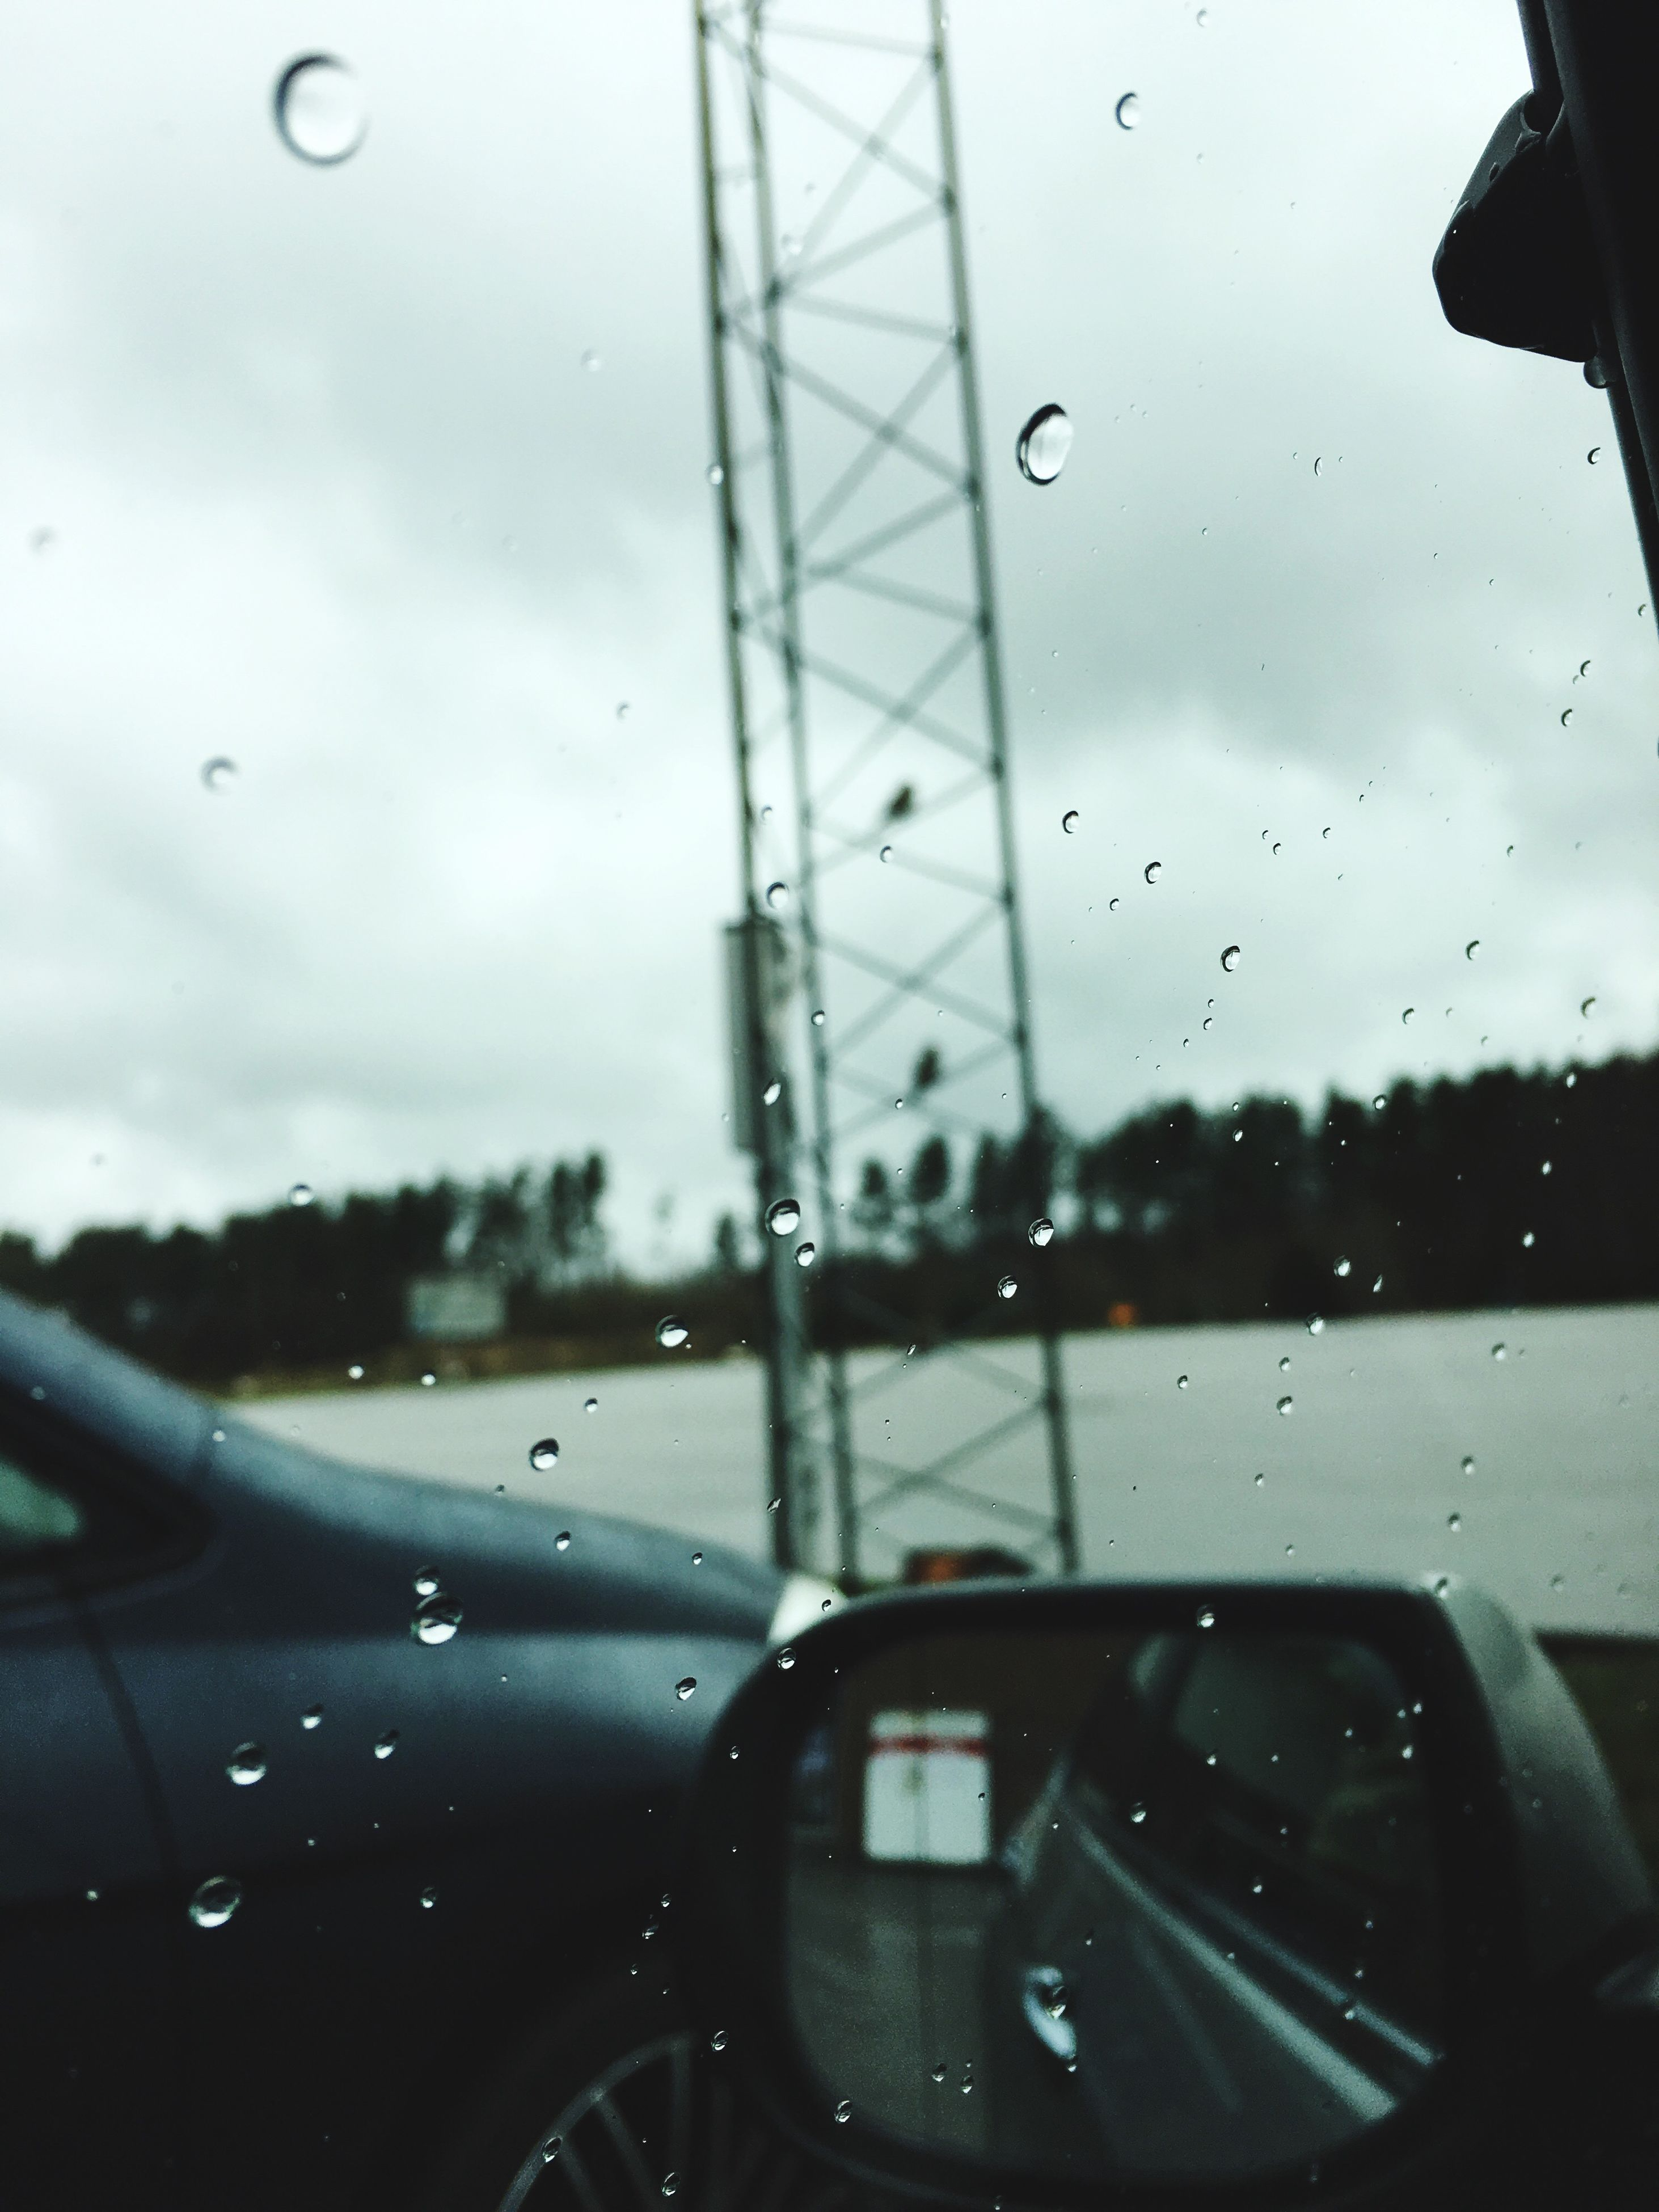 wet, rain, transparent, glass - material, transportation, car, vehicle interior, drop, car interior, windshield, water, weather, mode of transport, sky, land vehicle, close-up, window, rainy season, no people, day, dashboard, nature, windscreen, tree, indoors, vehicle mirror